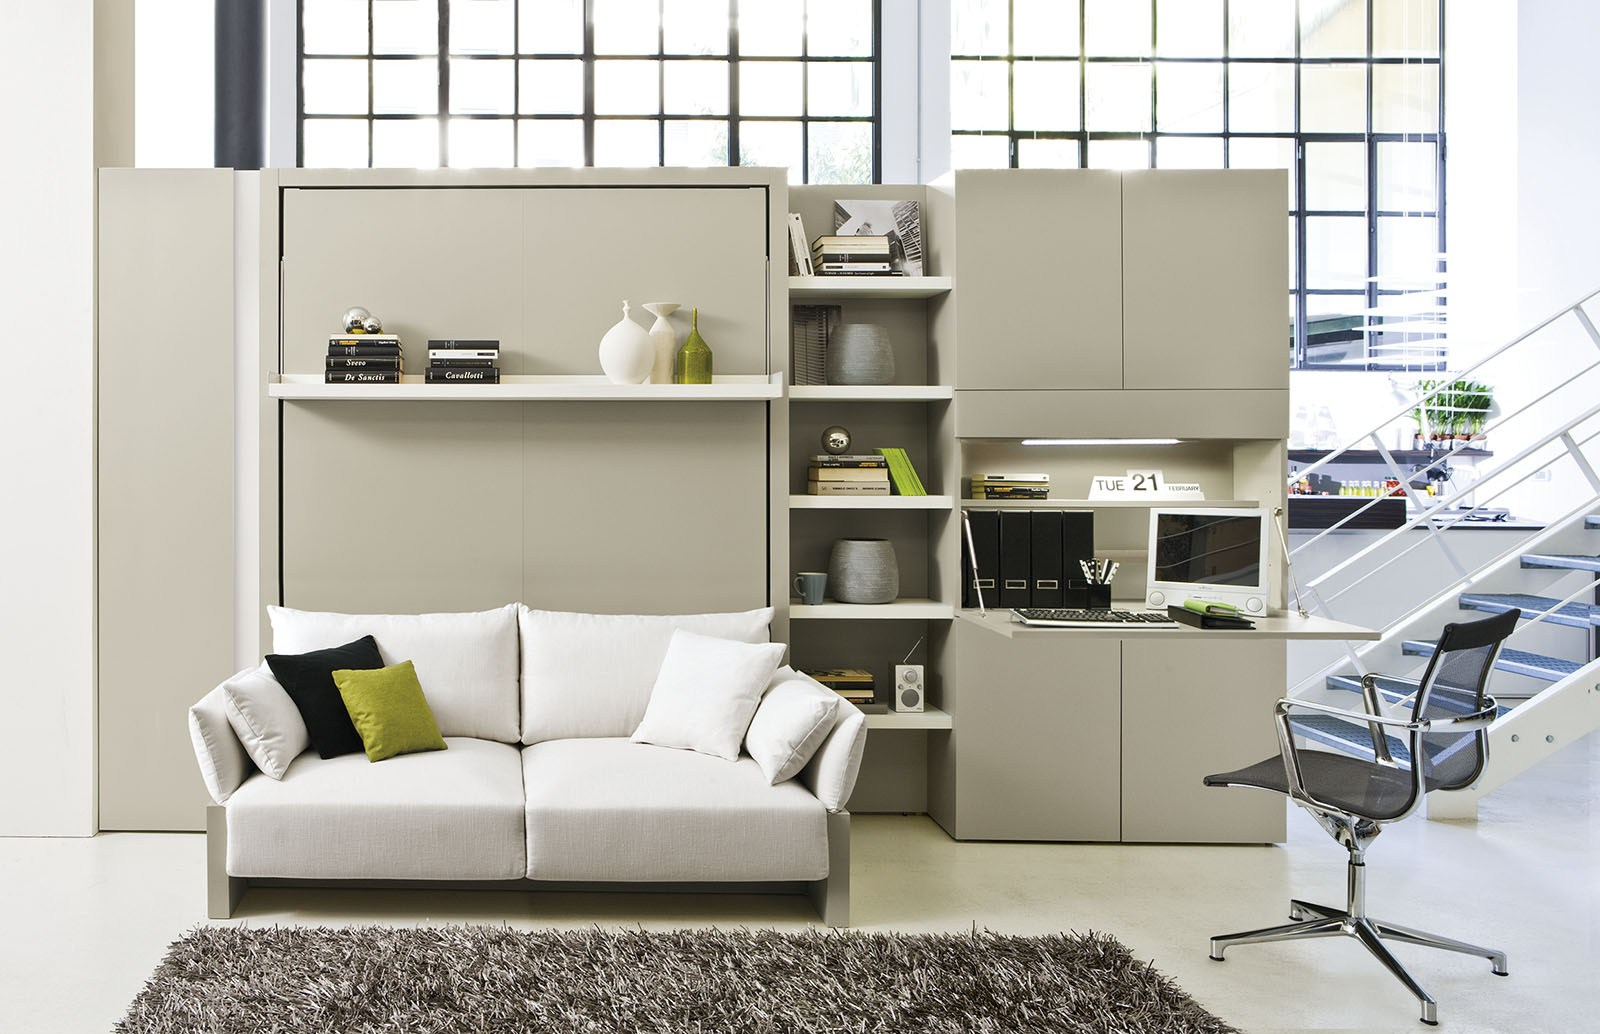 Bed that pulls down from wall - Storage Wall With Fold Away Bed Nuovoliol 10 By Clei Design Pierluigi Colombo